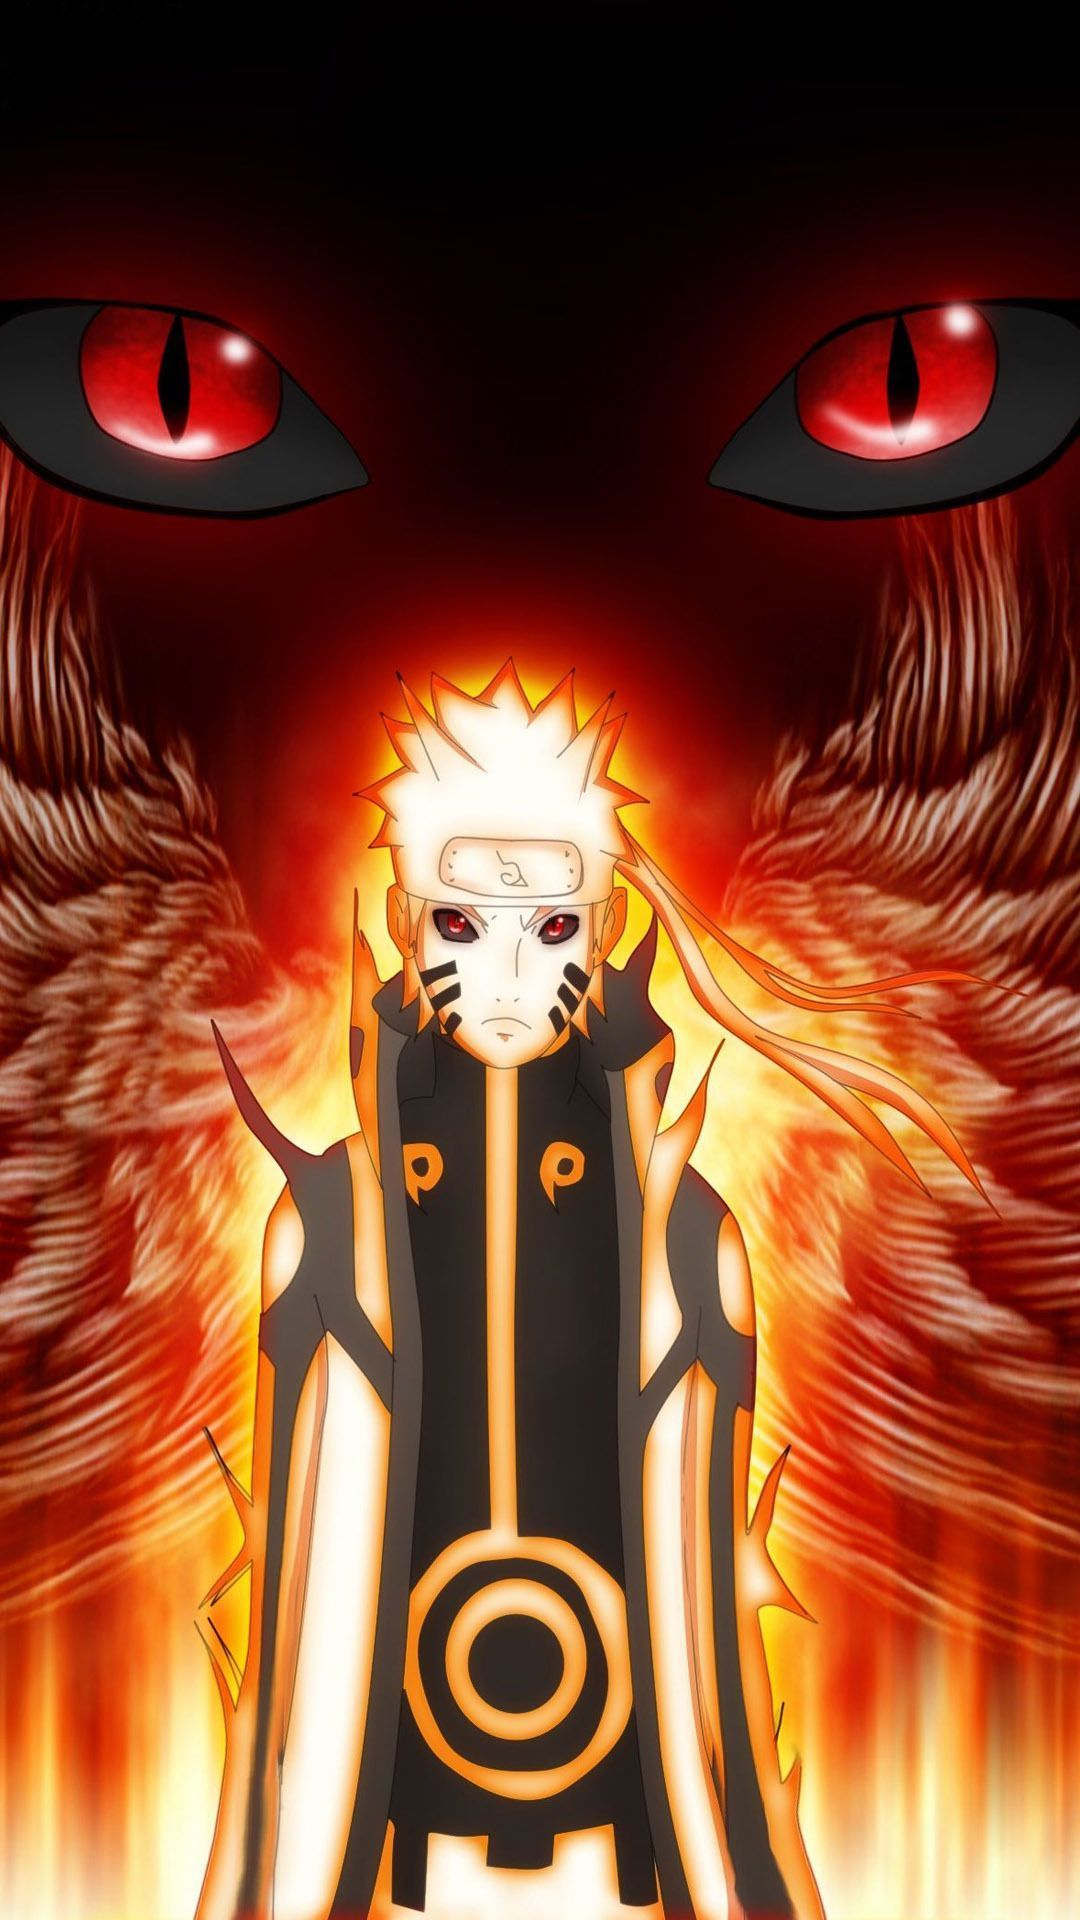 11 naruto iphone hd wallpapers - the ramenswag